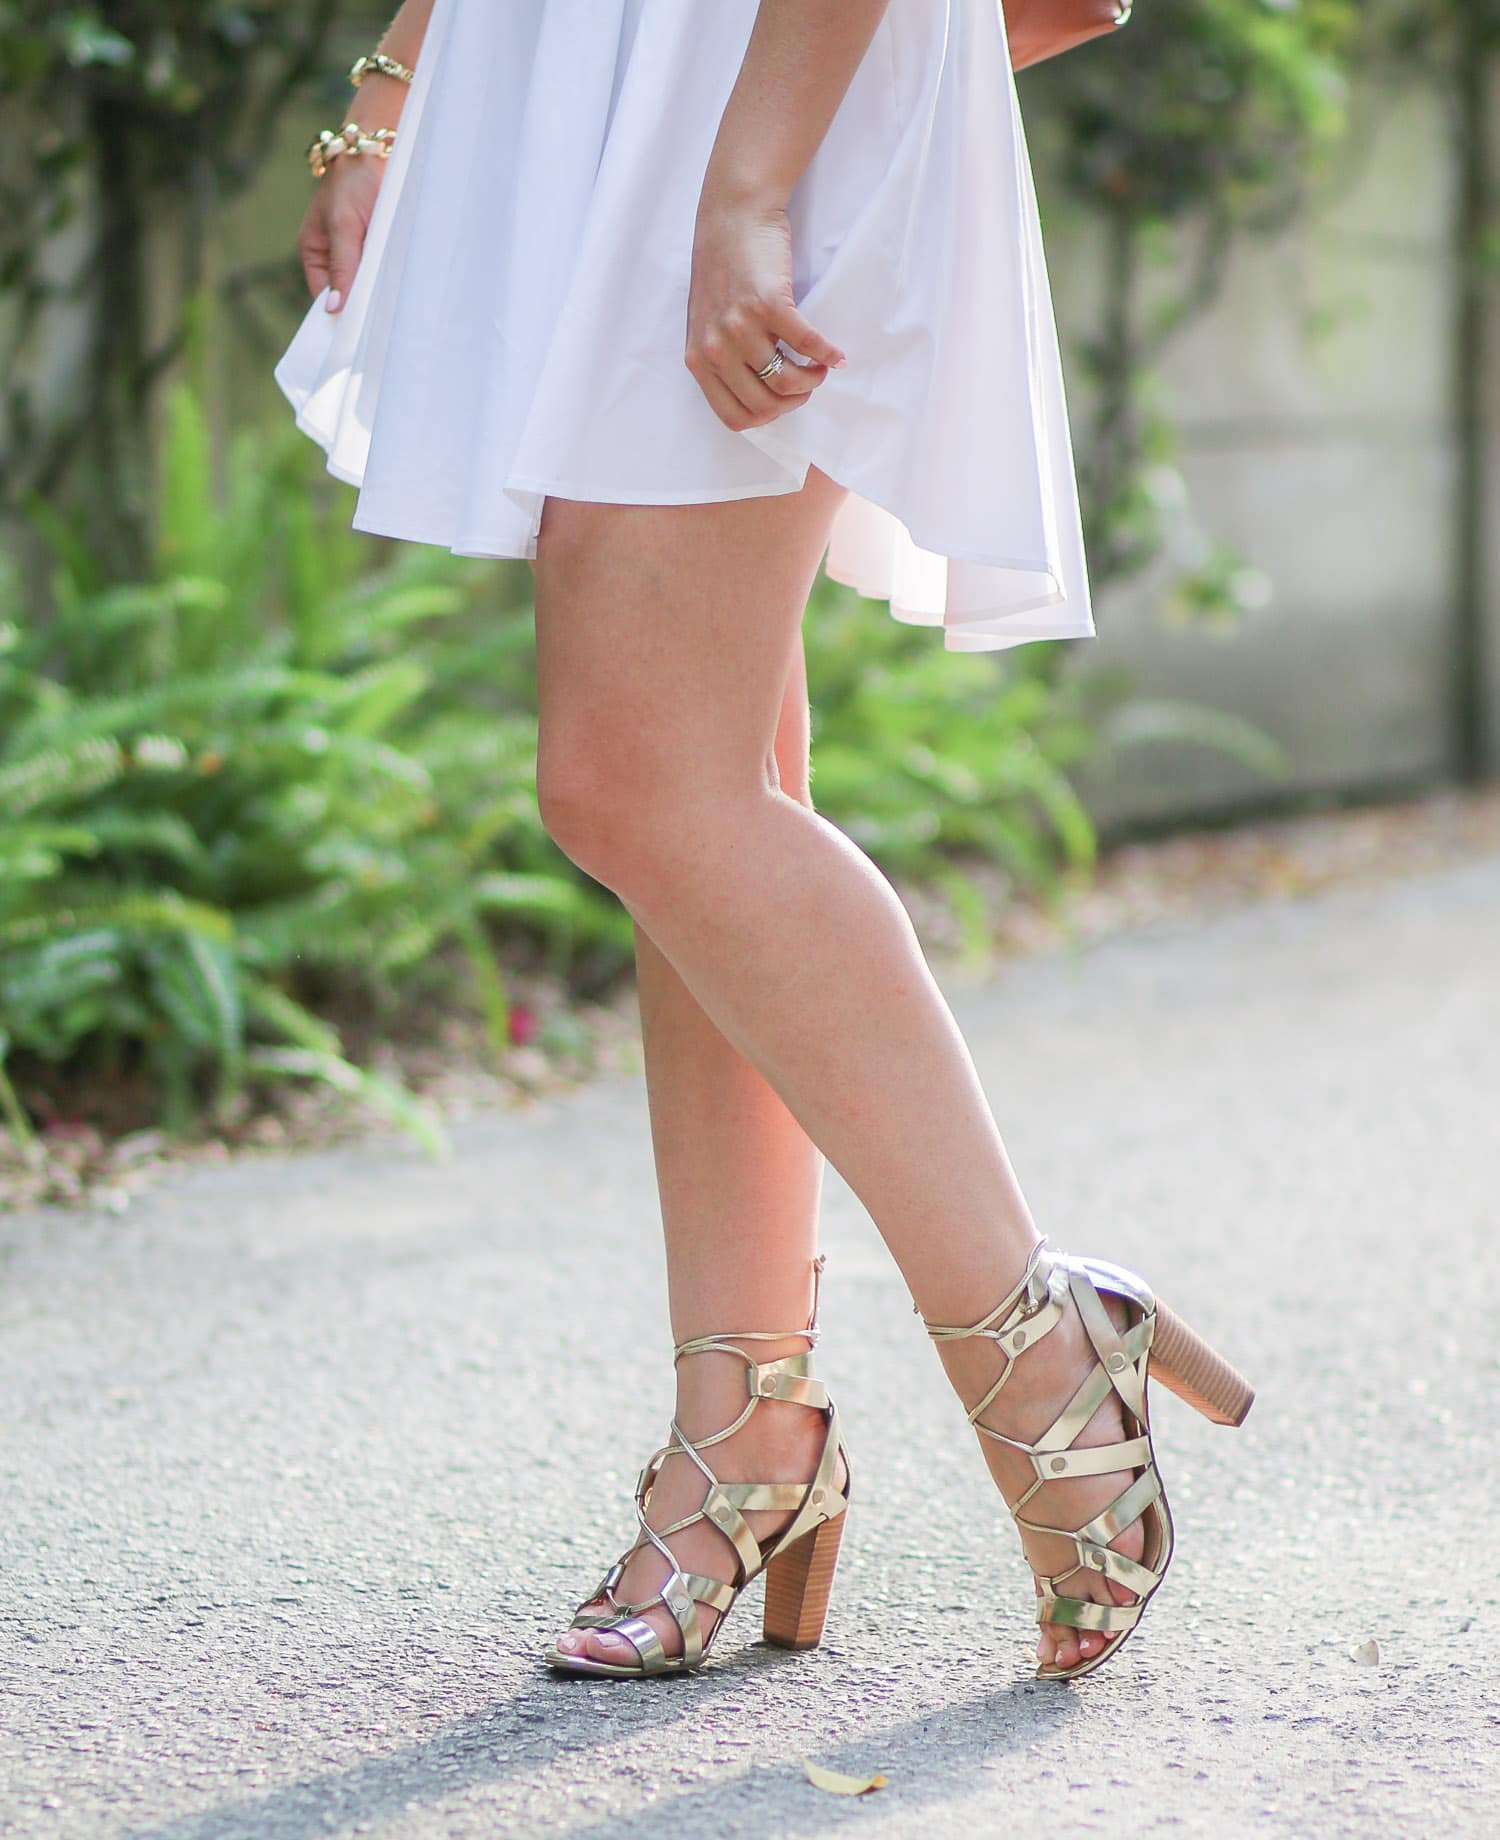 Every woman needs to own these shoes. Seriously, Banana Republic knocked it out of the park with these gorgeous gold lace-up heels. They're beautiful, but they're also extremely comfortable. I've worn them for 12 hours straight without blisters! Click through this pin to see how I styled these heels w/ an Express white button-down dress + learn how I got amazing new hair for the season thanks to my friends at Hair Cuttery!   by Ashley Brooke Nicholas #MyHCLook sponsored by Hair Cuttery